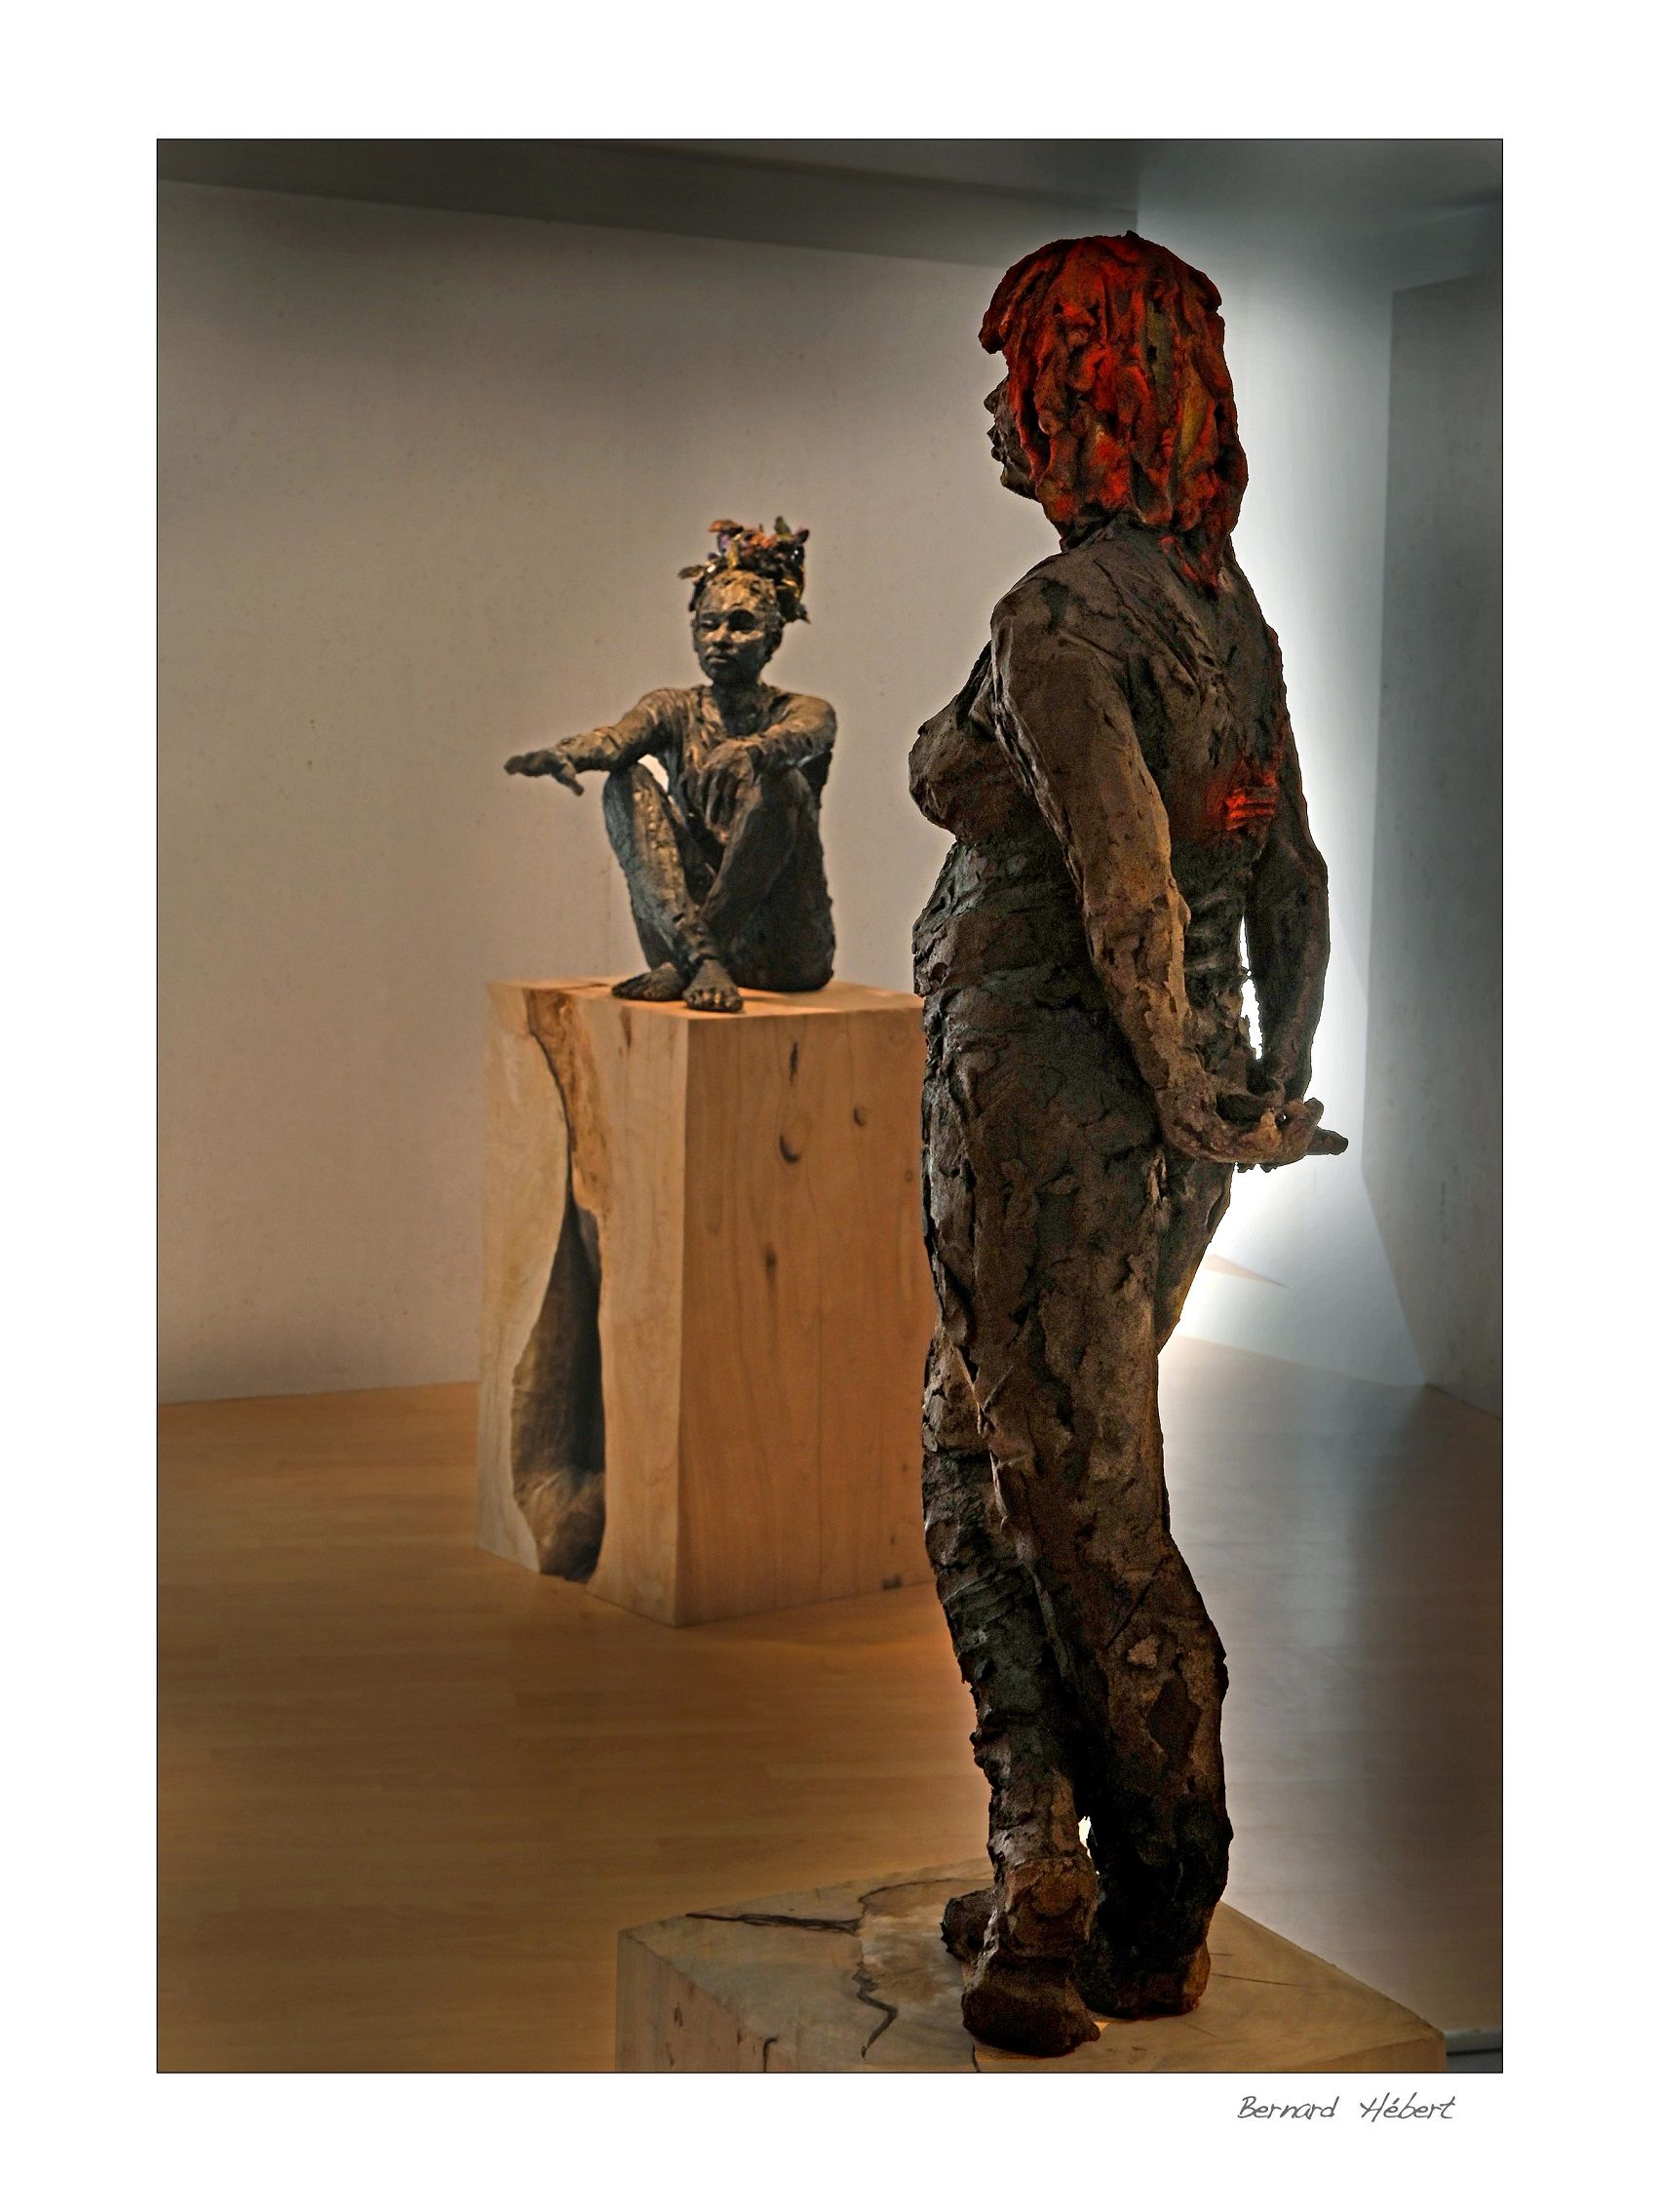 Scarlet (with Lindsay),Cécile Raynal,Sculpture, detail 2